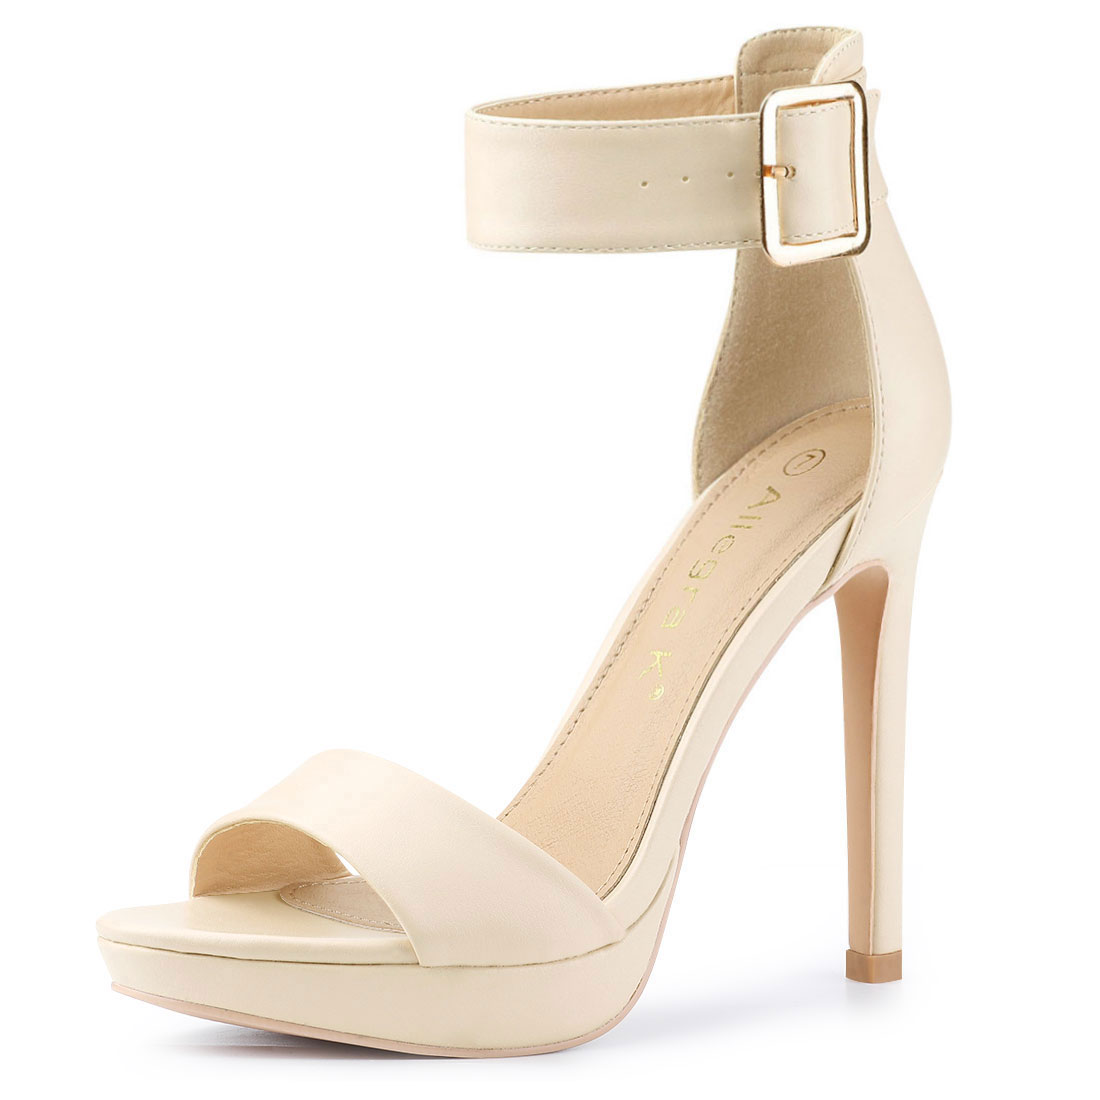 Allegra K Women's Open Toe Platform Strap Stiletto Heel Sandals Beige US 7.5